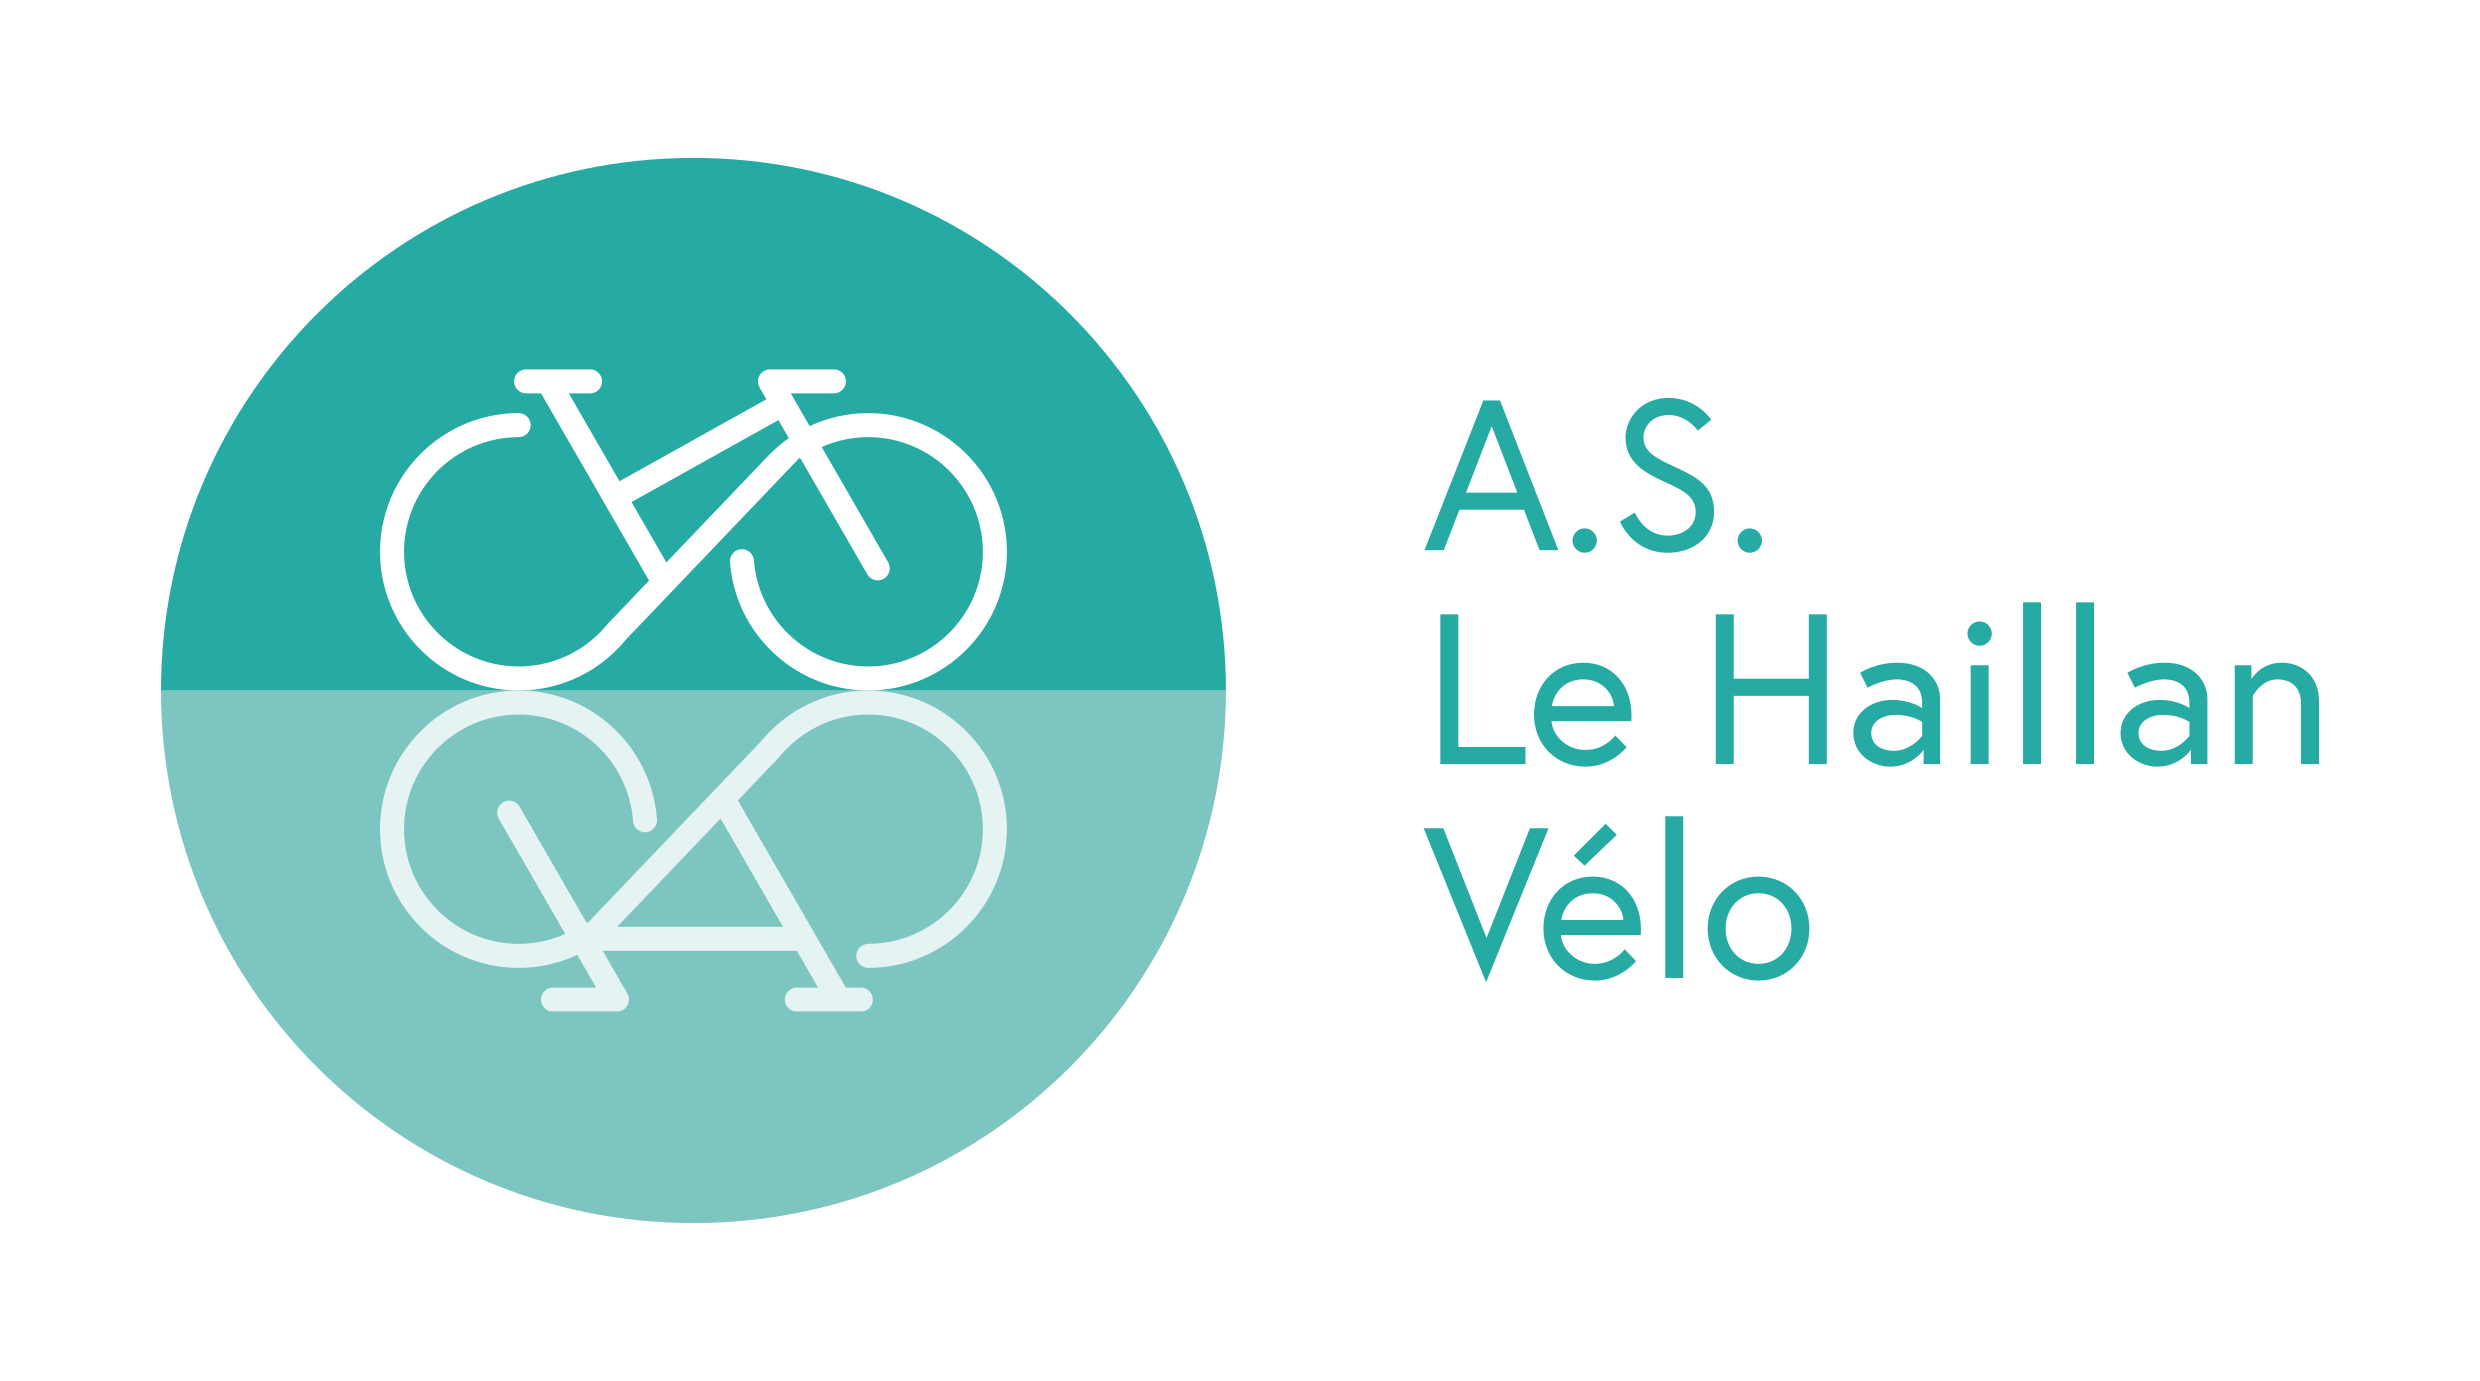 logo_as_haillan_velo